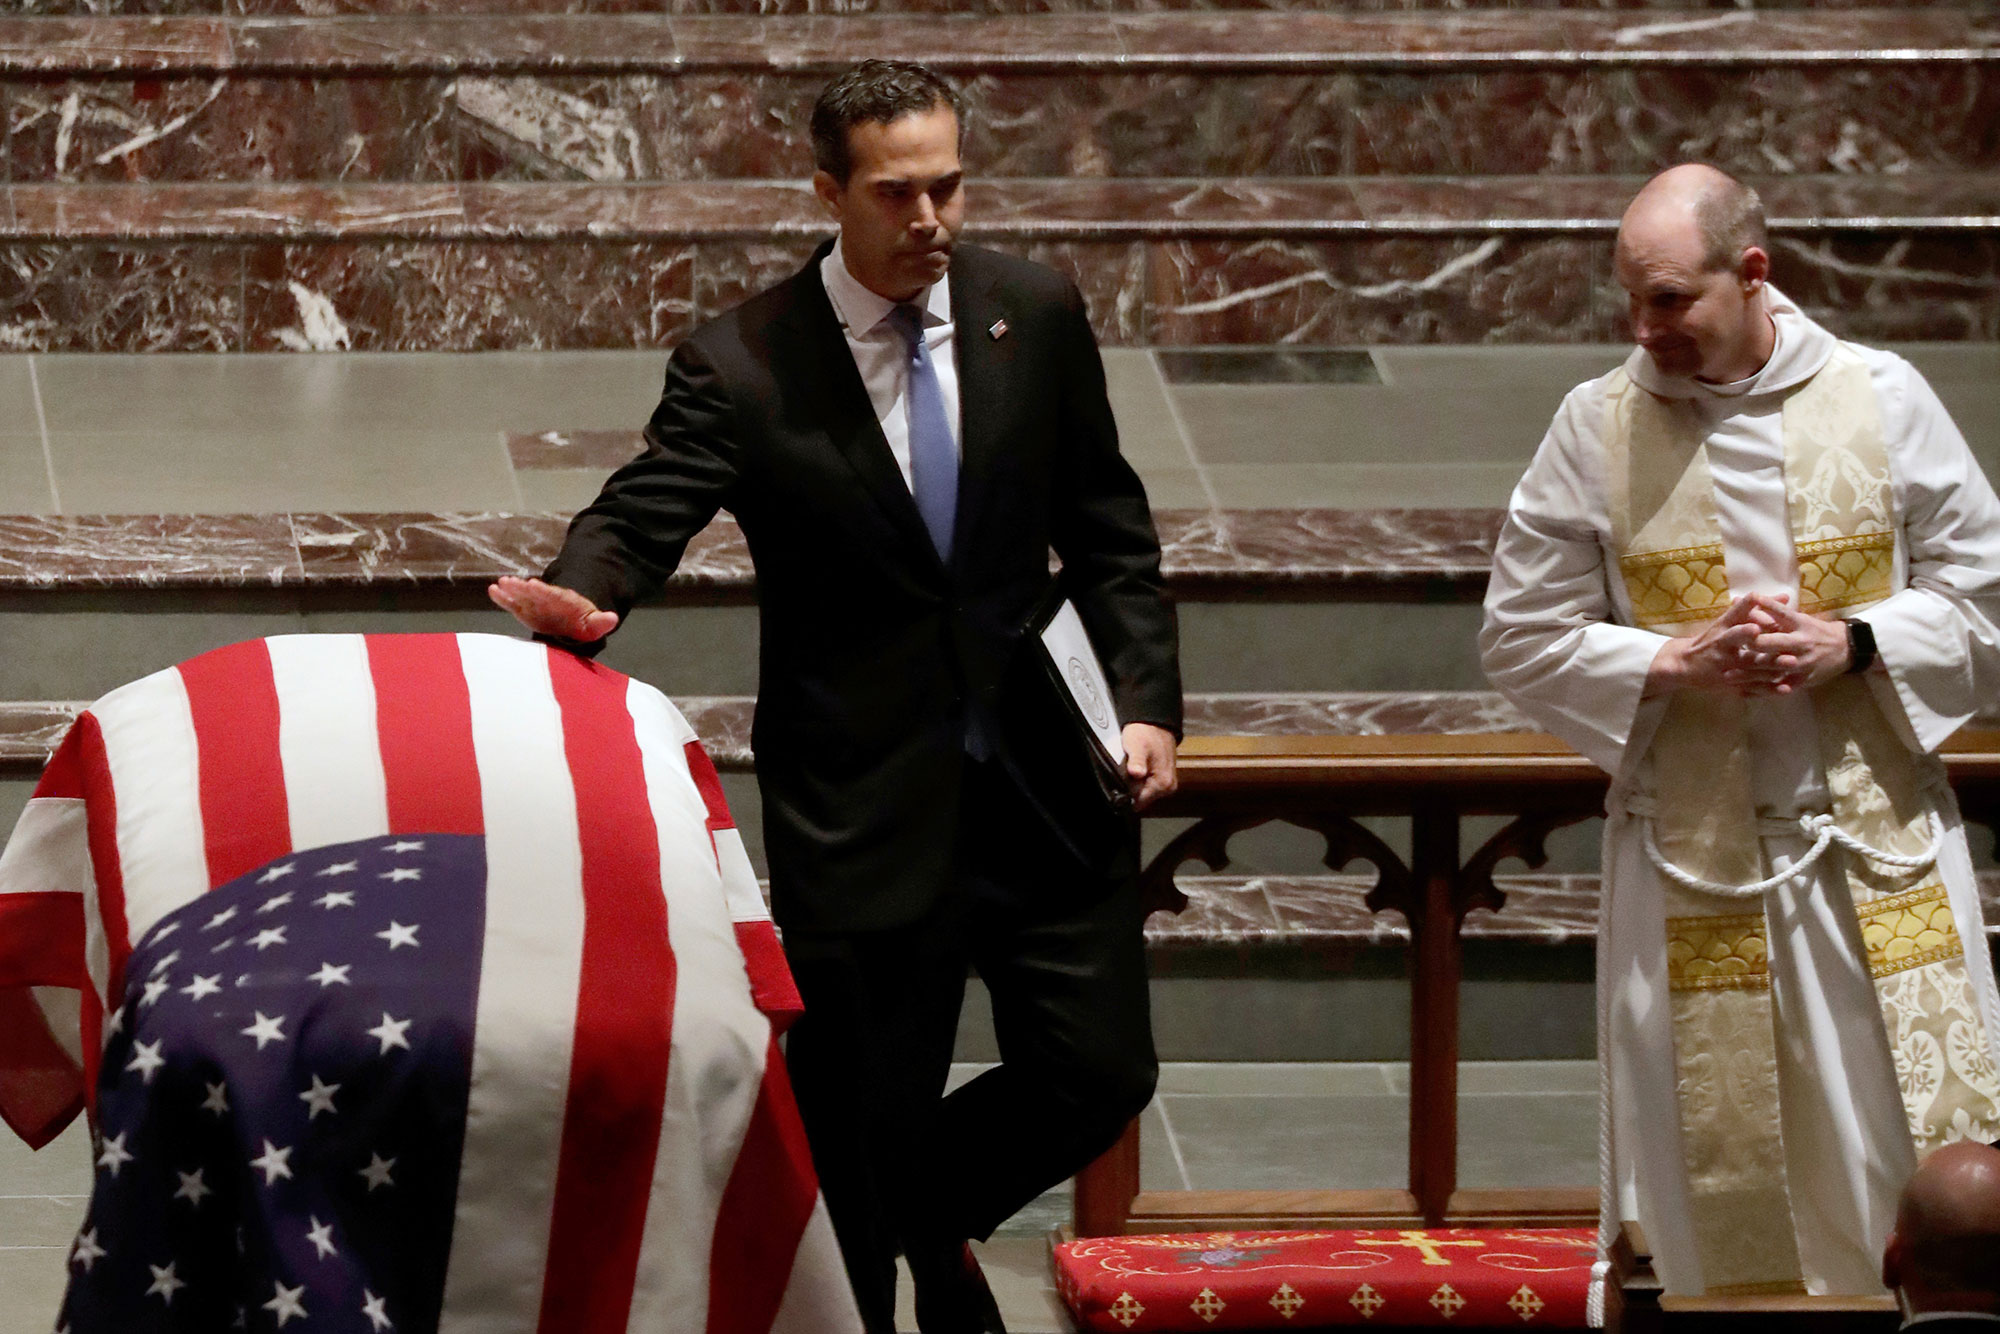 <div class='meta'><div class='origin-logo' data-origin='none'></div><span class='caption-text' data-credit='Mark Humphrey/AP Photo'>George P. Bush touches the flag-draped casket after giving a eulogy during a funeral for former President George H.W. Bush at St. Martin's Episcopal Church Thursday, Dec. 6, 2018.</span></div>